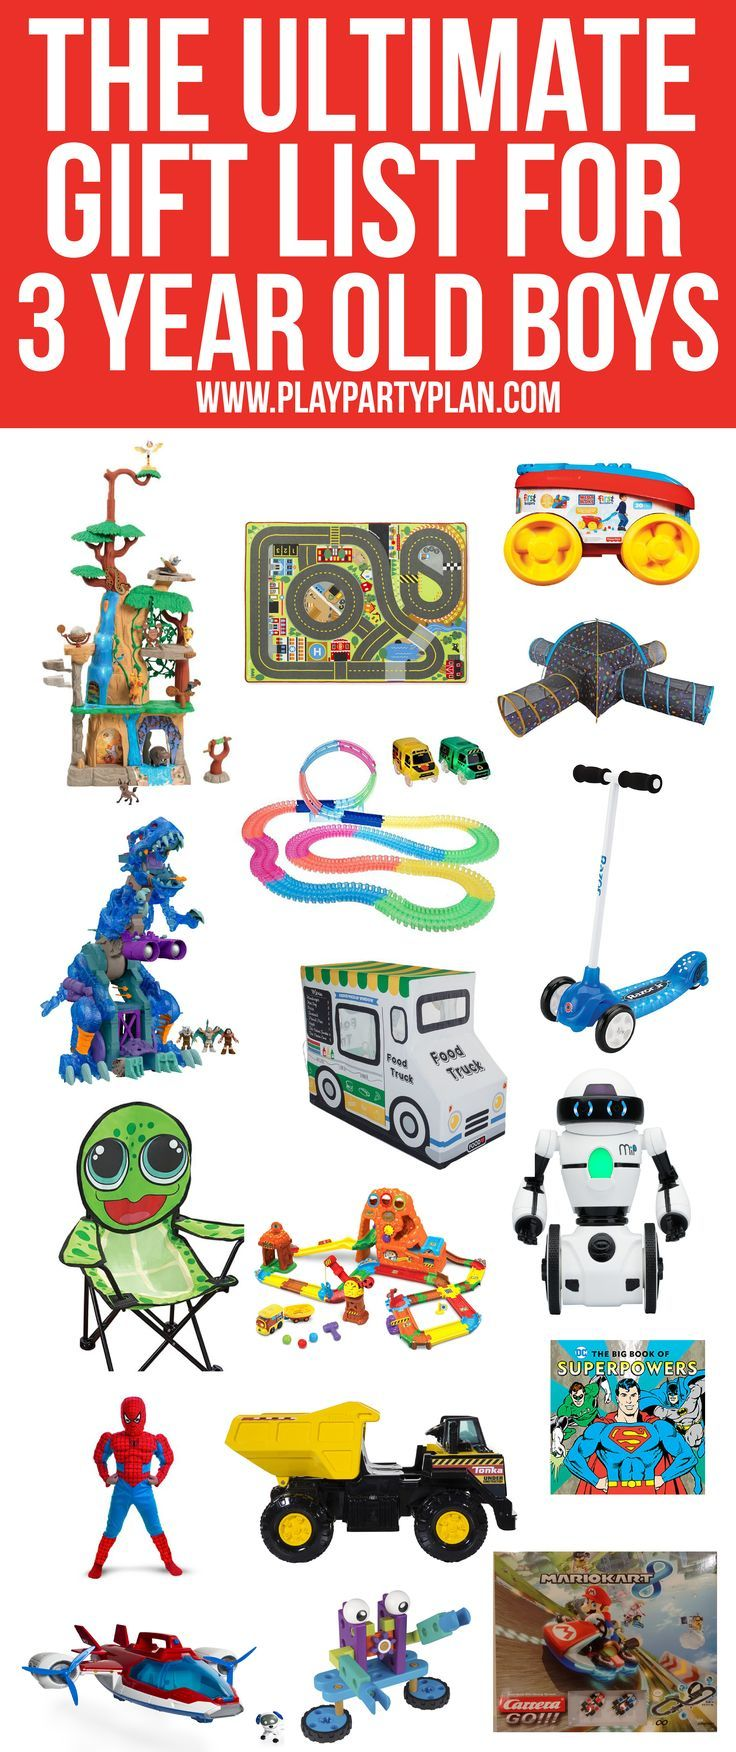 The Ultimate List Of Gift Ideas For A 3 Year Old Boy Everything From Superhero Gifts To Books Preschoolers Youll Sure Find Something Theyll Love